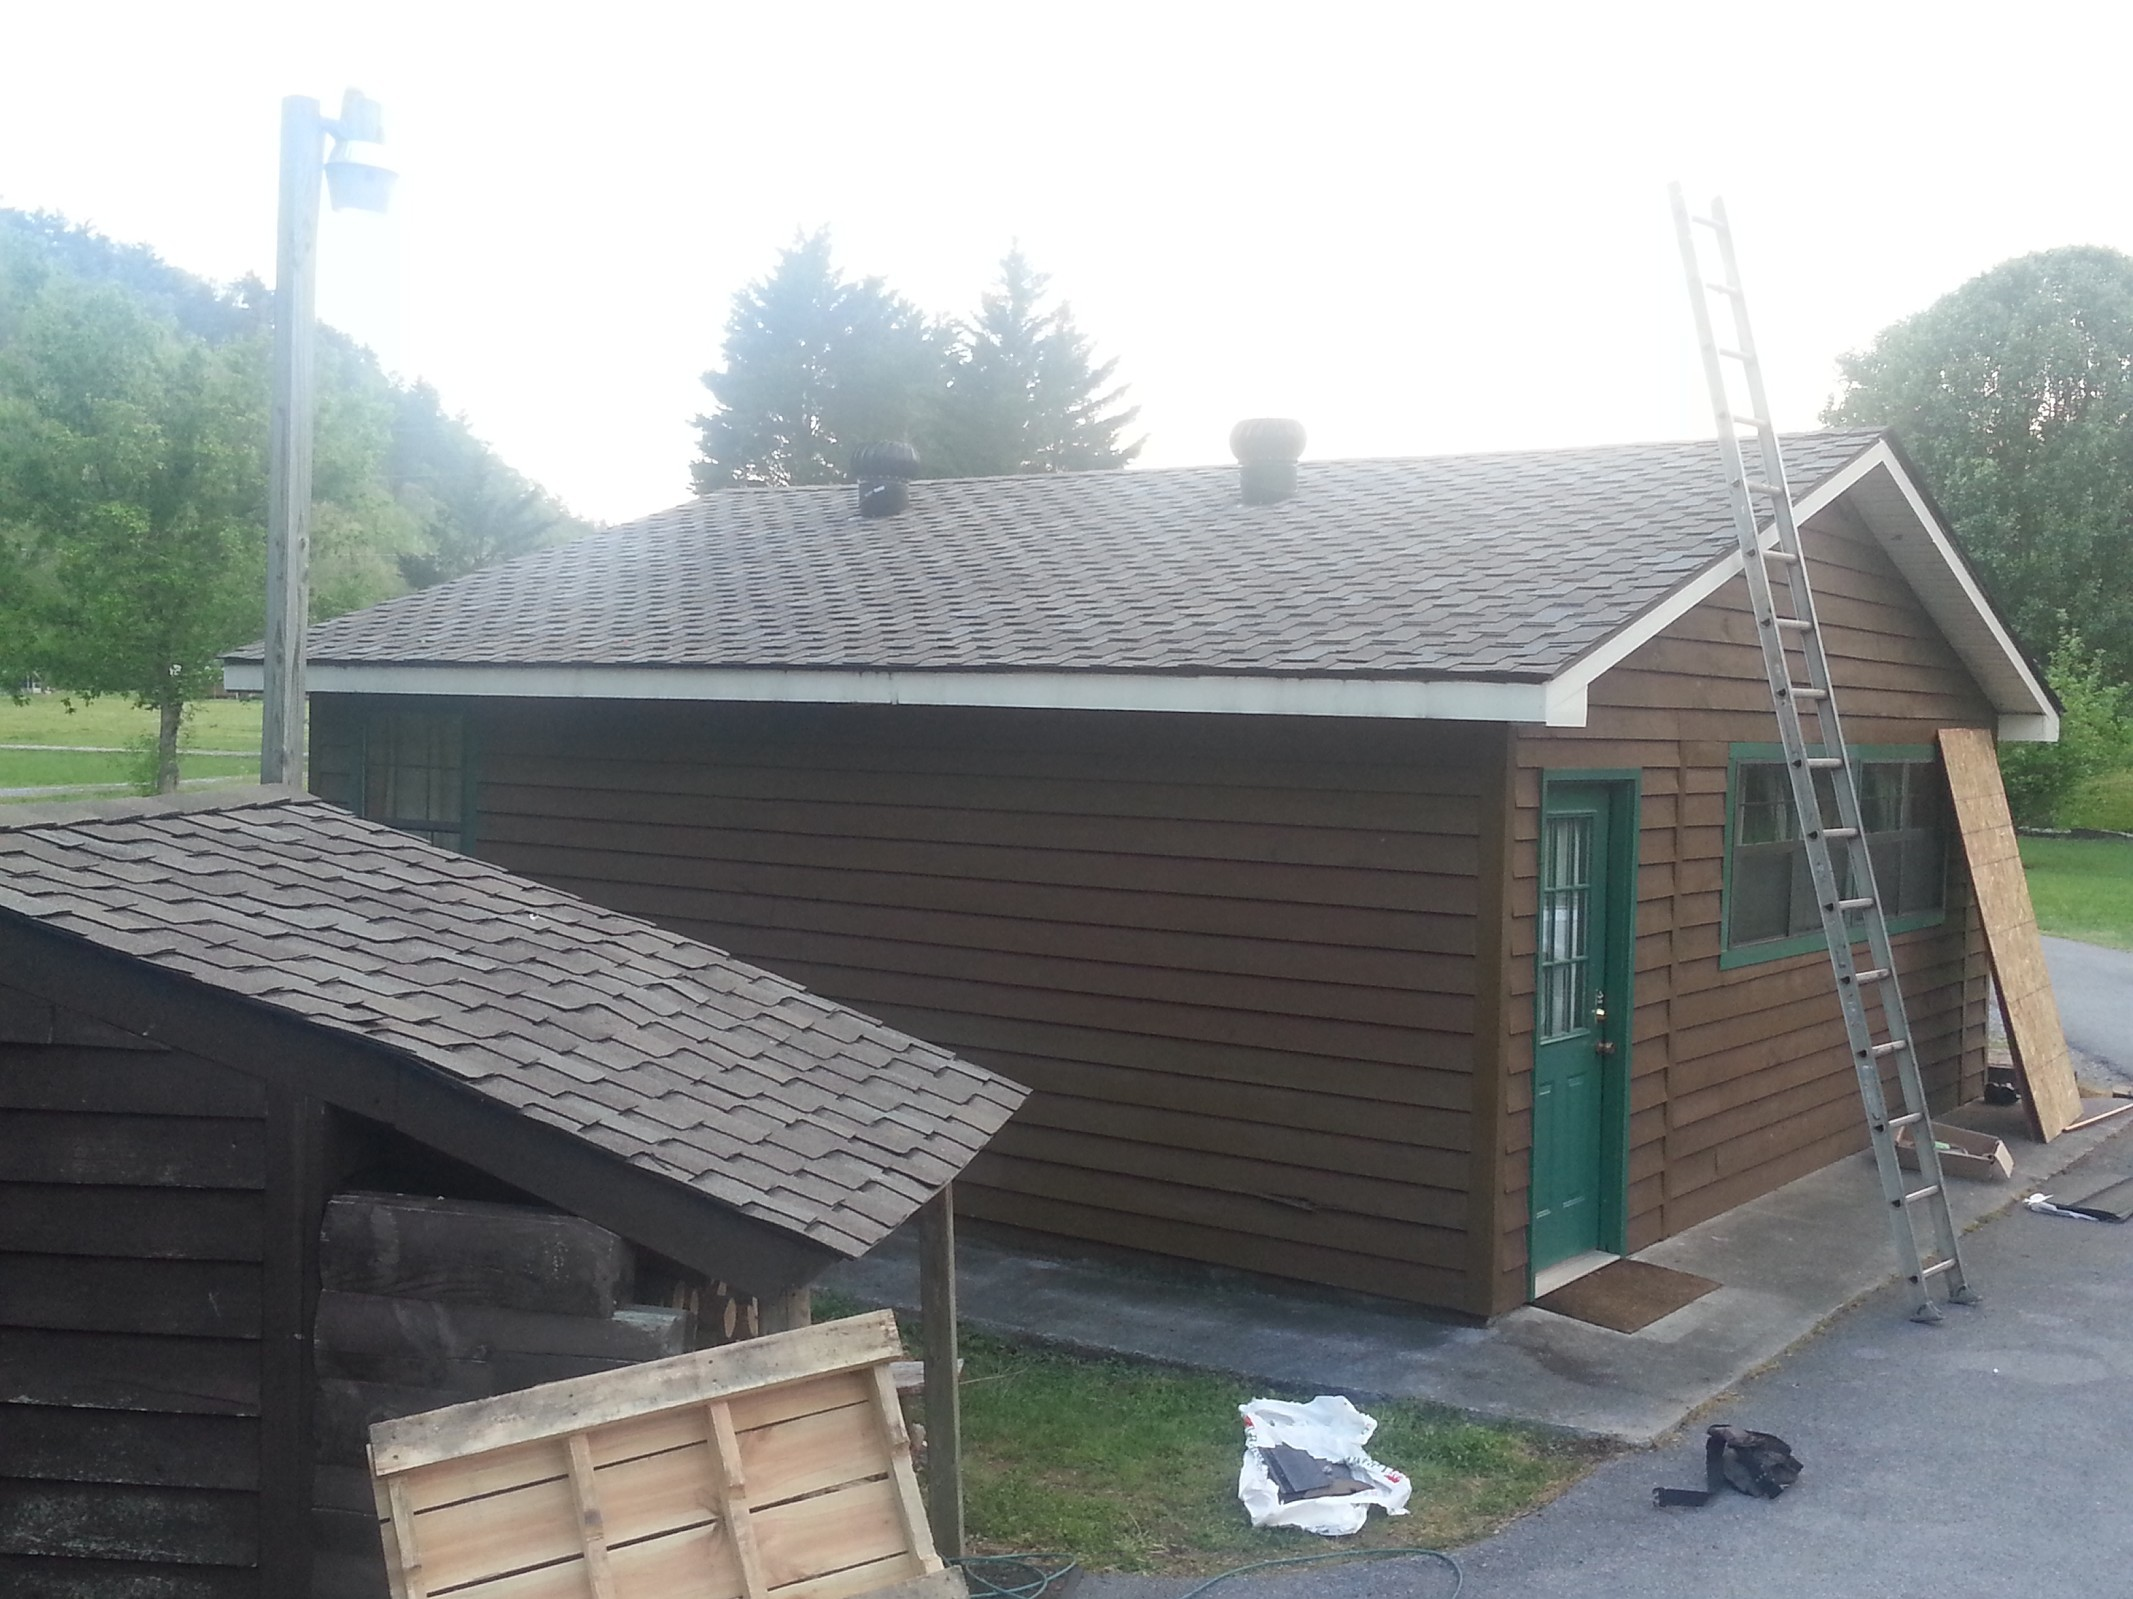 Residential roofing Knoxville TN - Burell Built Exteriors & Roofing Company, LLC